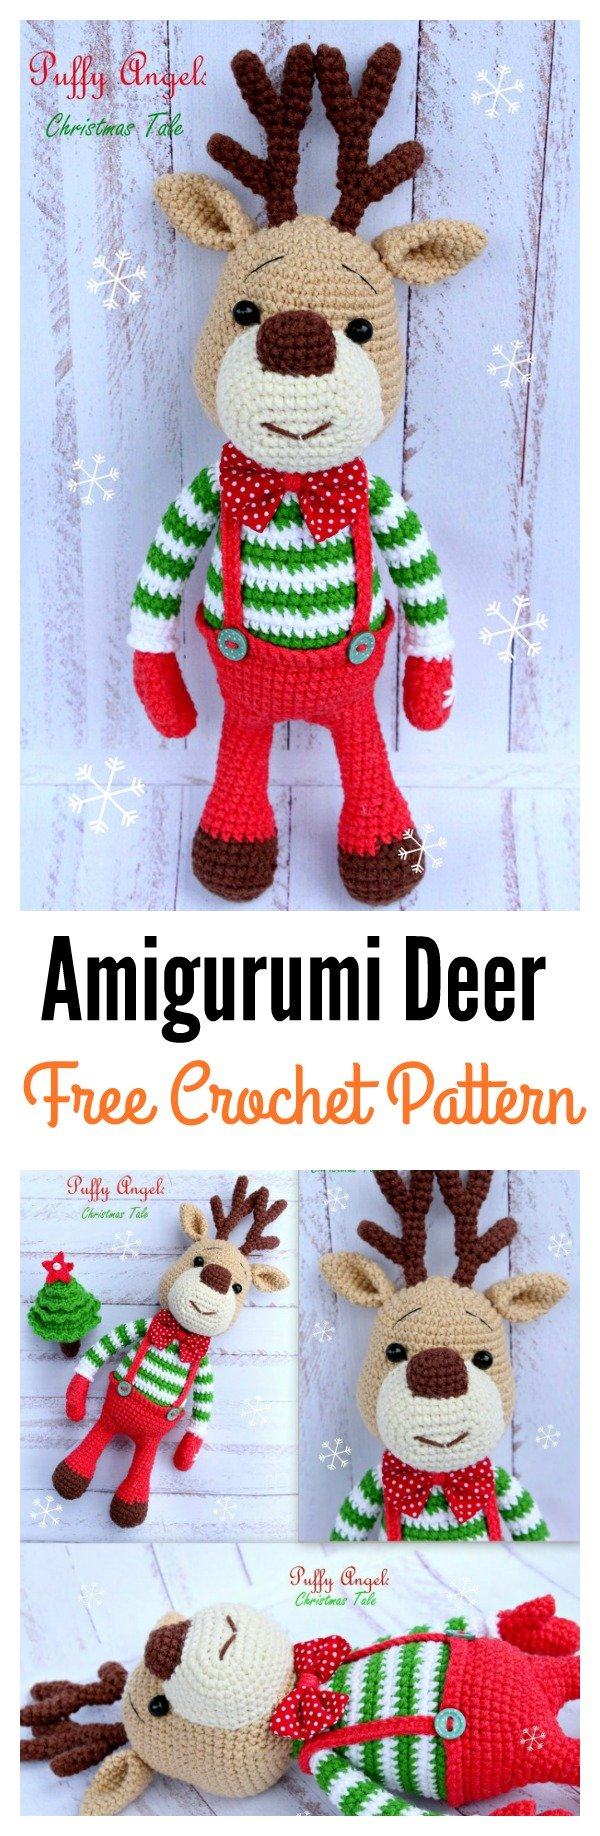 20 Crochet Reindeer Patterns - Page 3 of 3